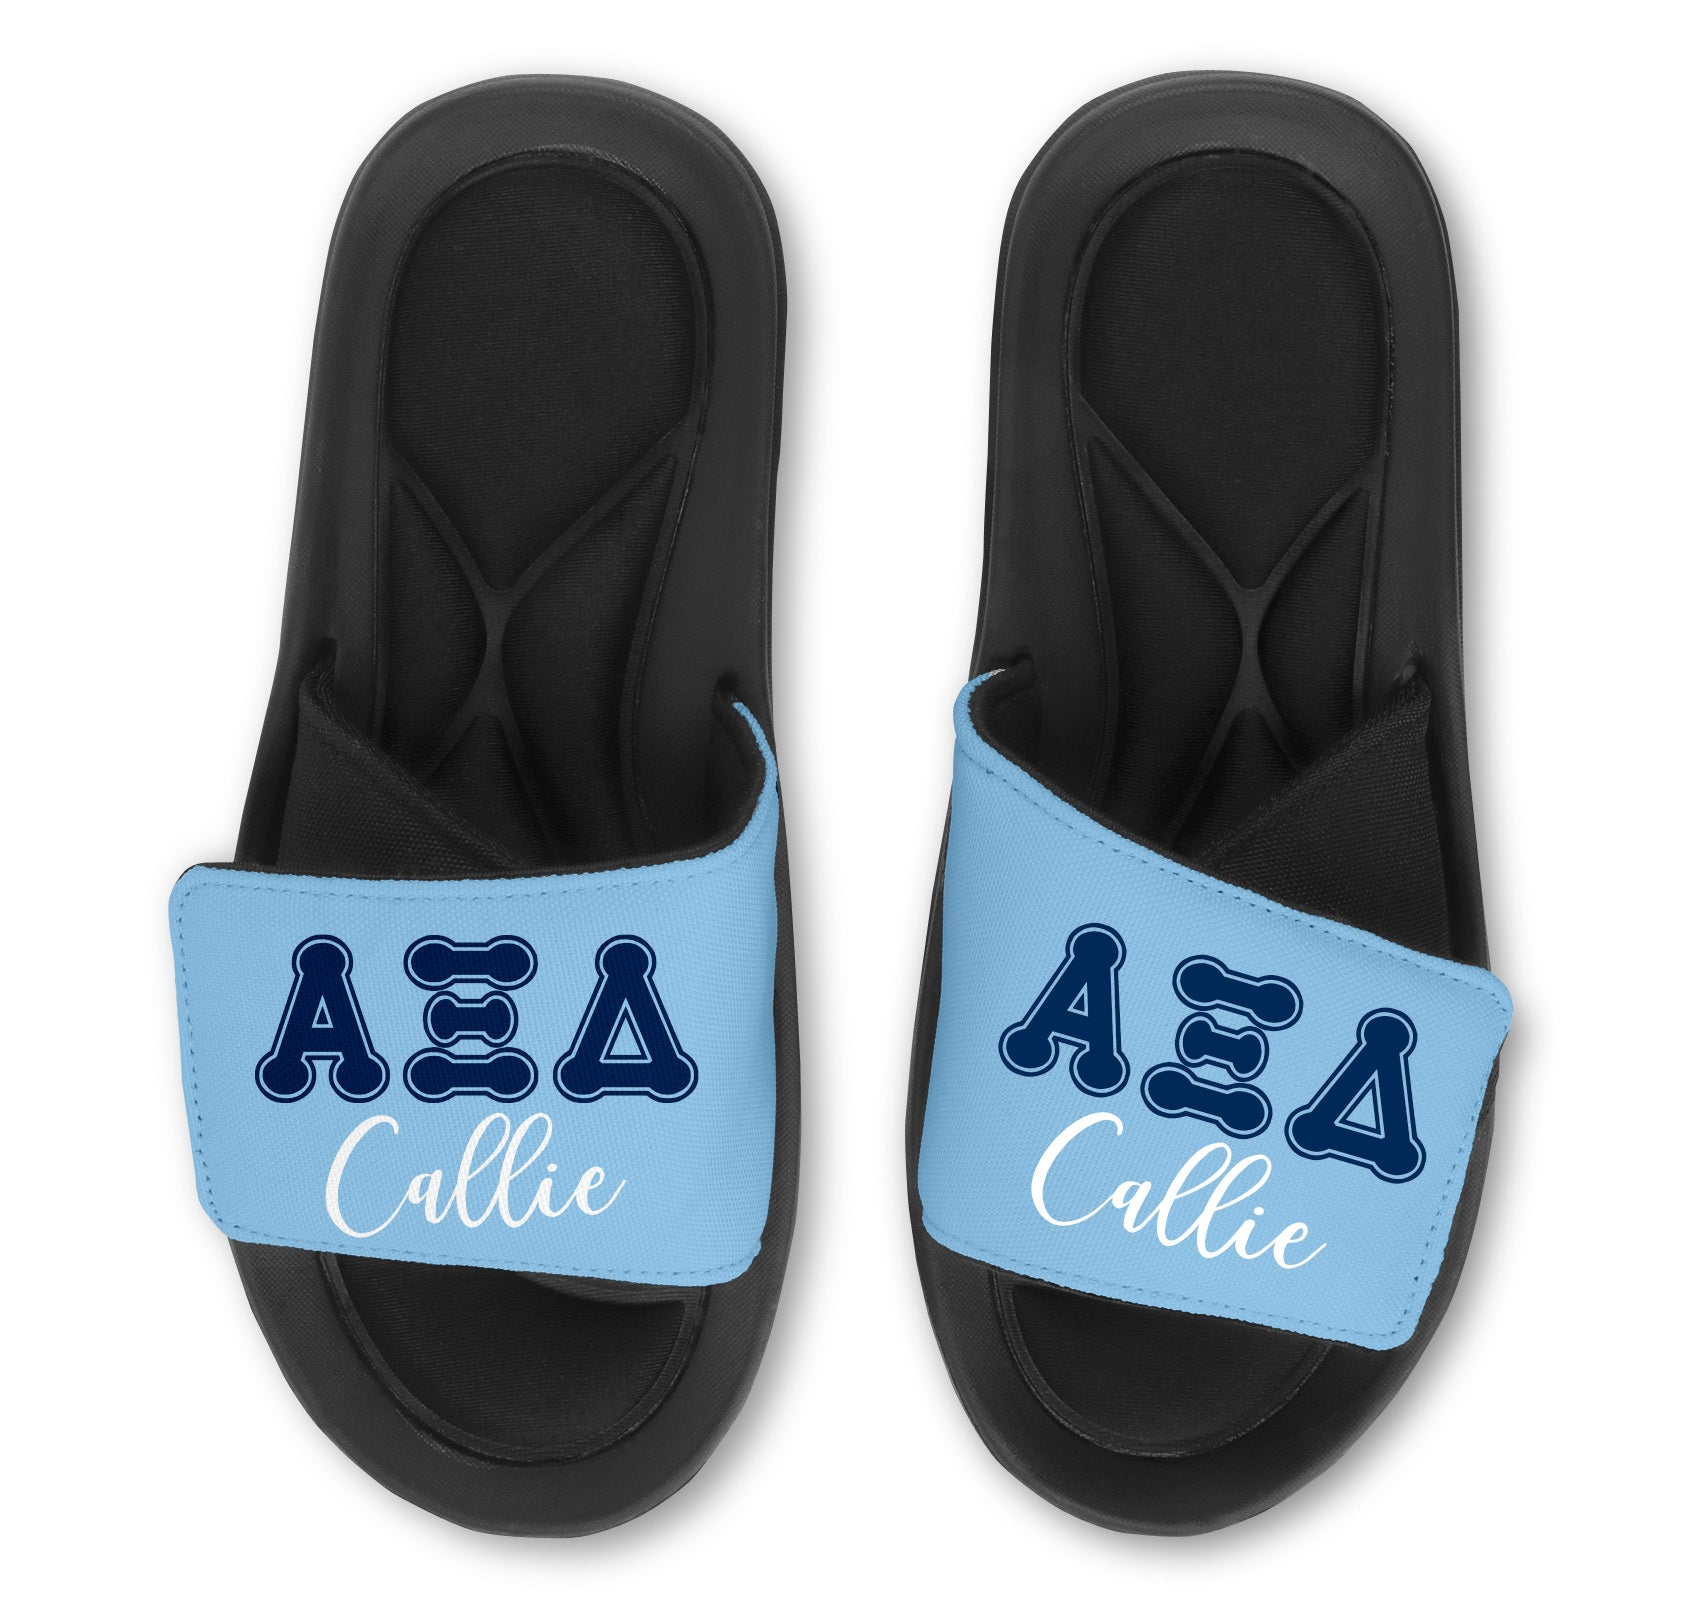 Alpha Xi Delta Slides -Customize With Your Name